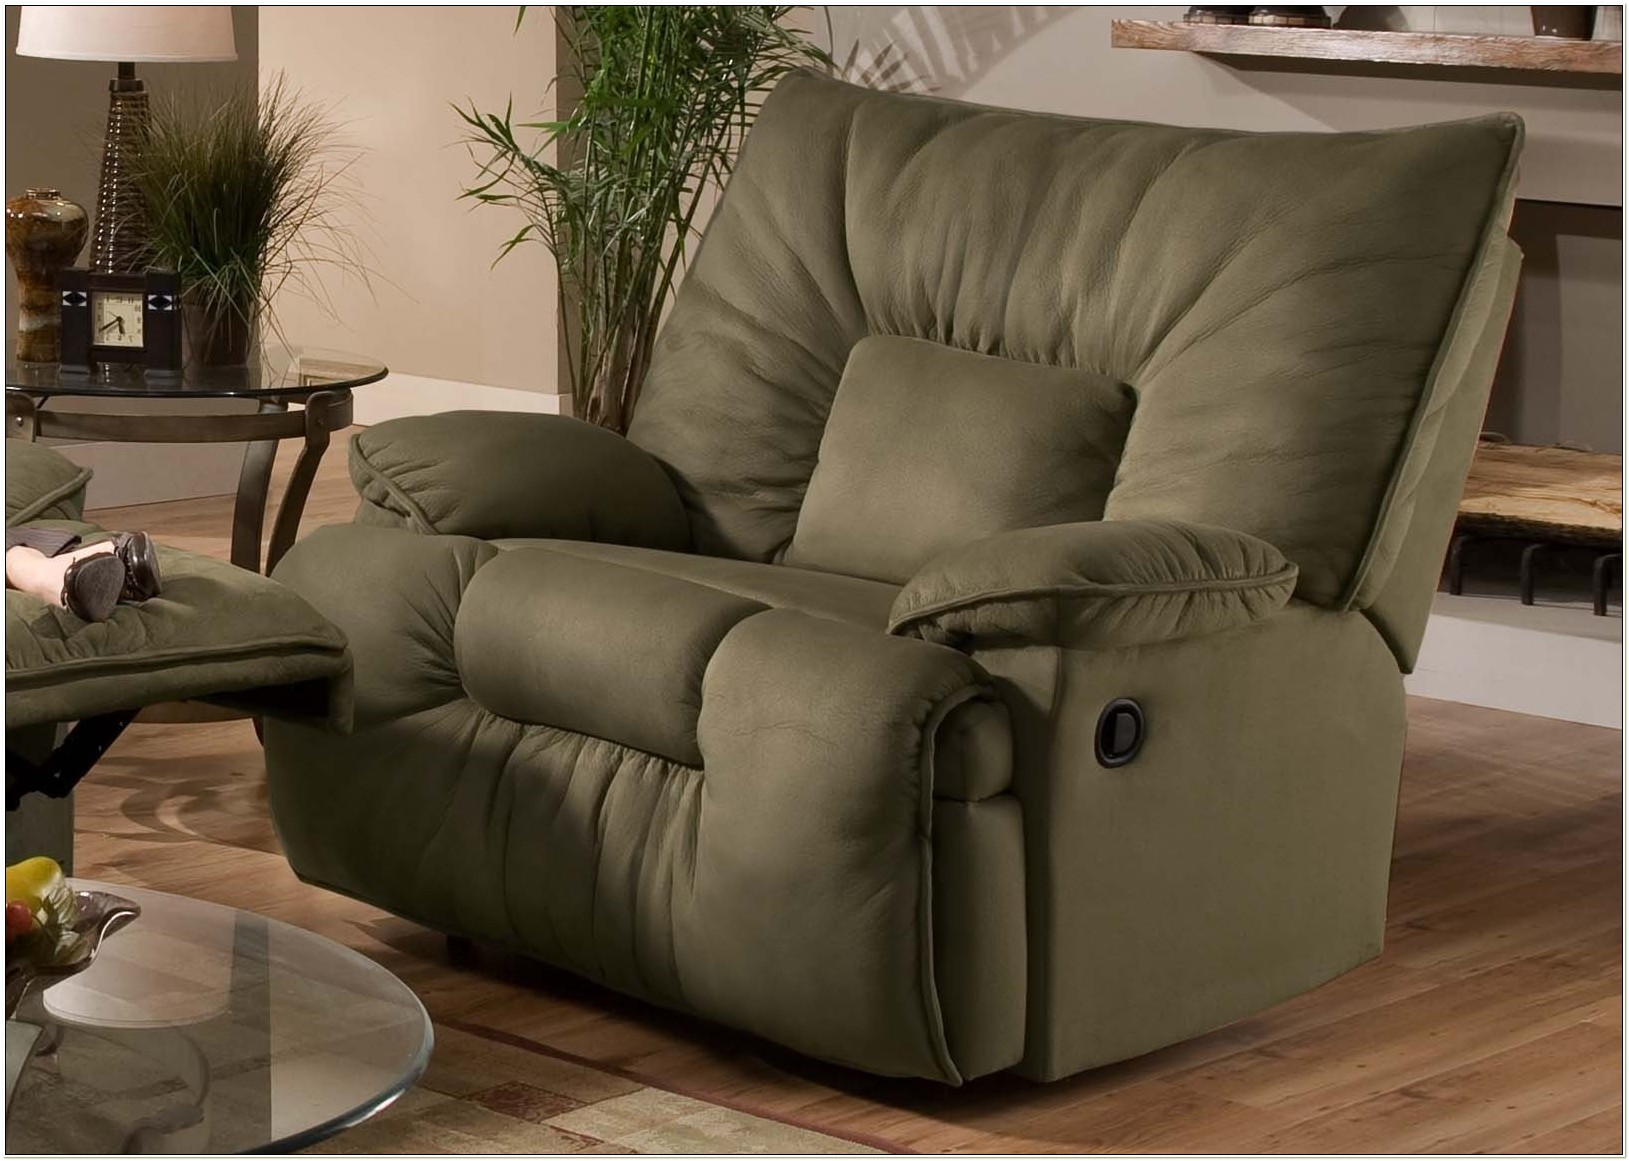 Extra Large Rocker Recliner Chair